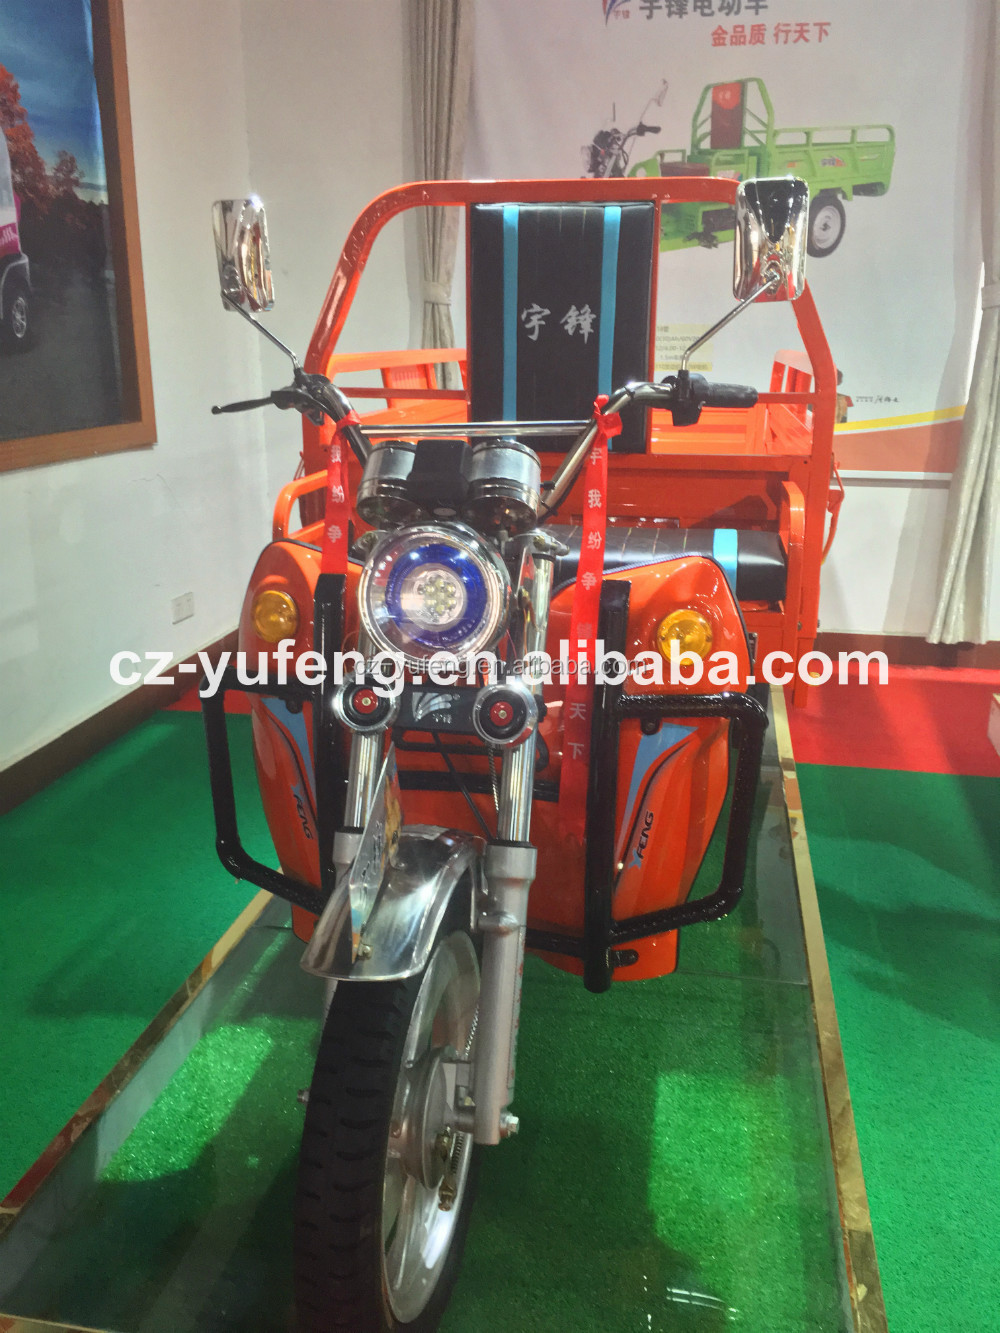 Yufeng open body electric tricycle for cargo transporting in best quality